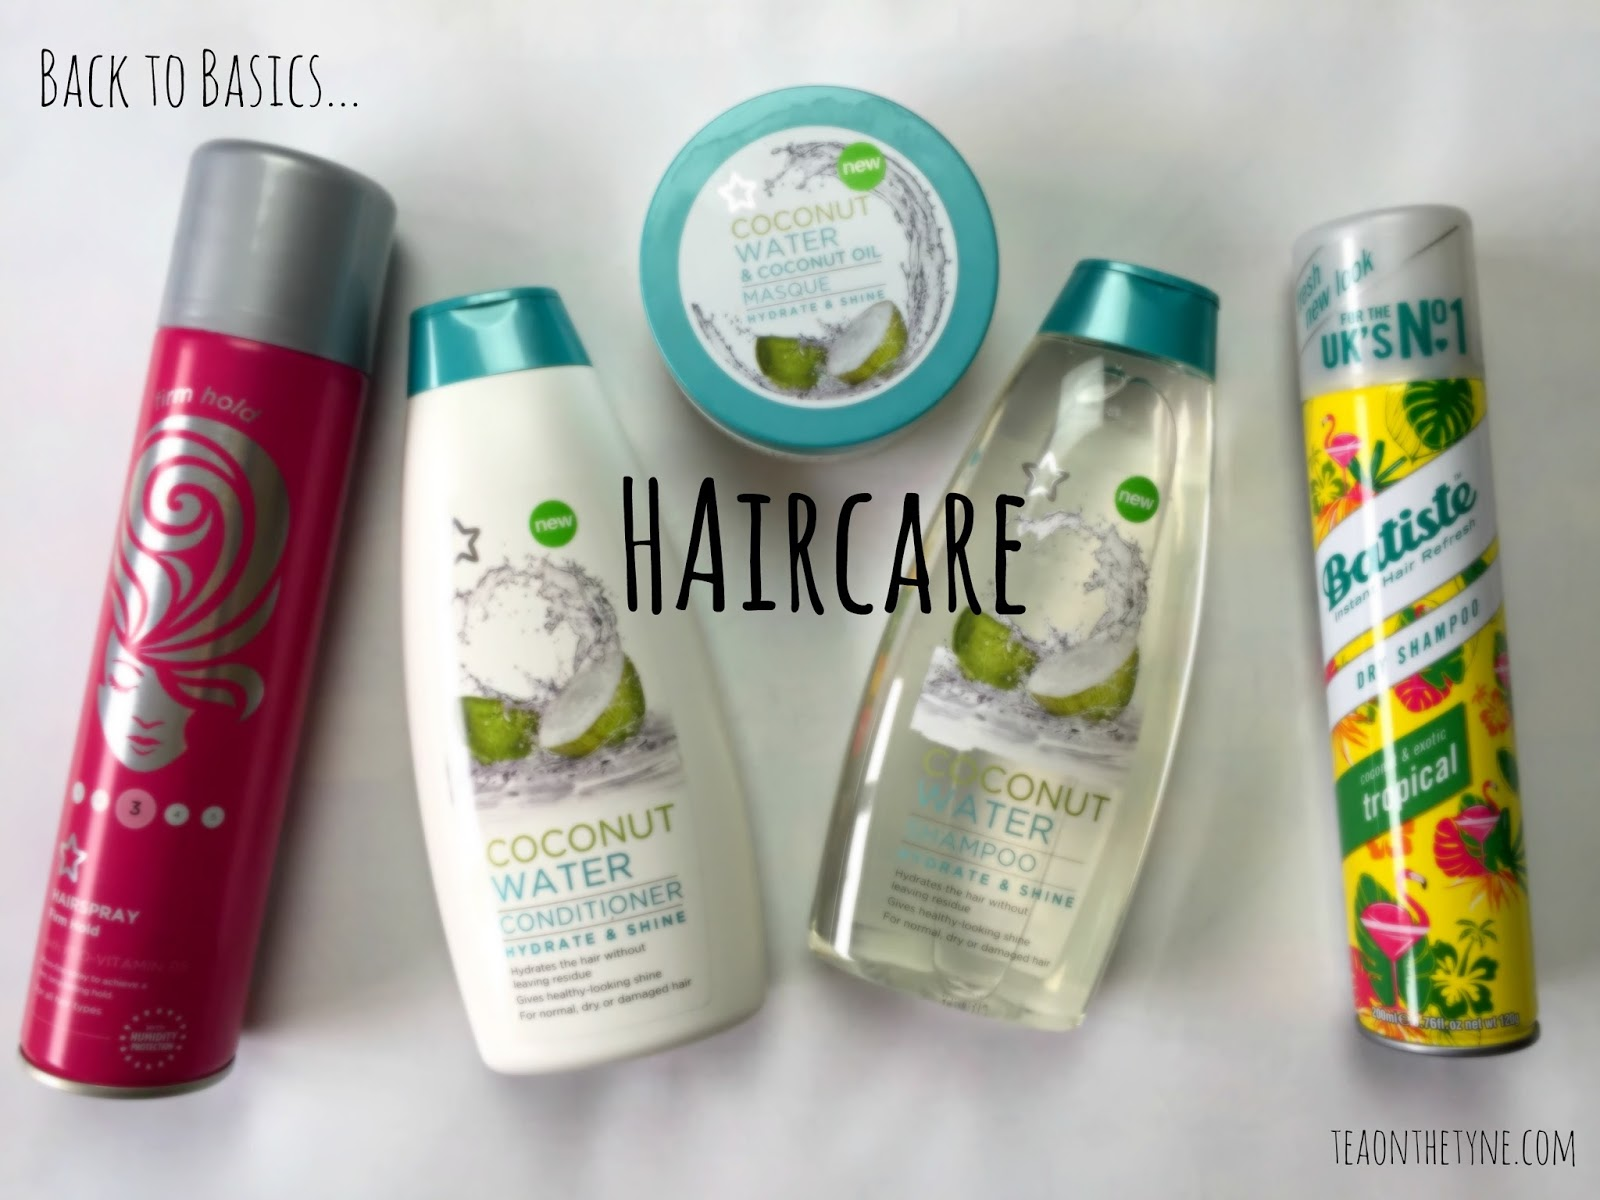 Cruelty Free and Vegan Haircare Shampoo Conditioner Hairspray Dry Shampoo